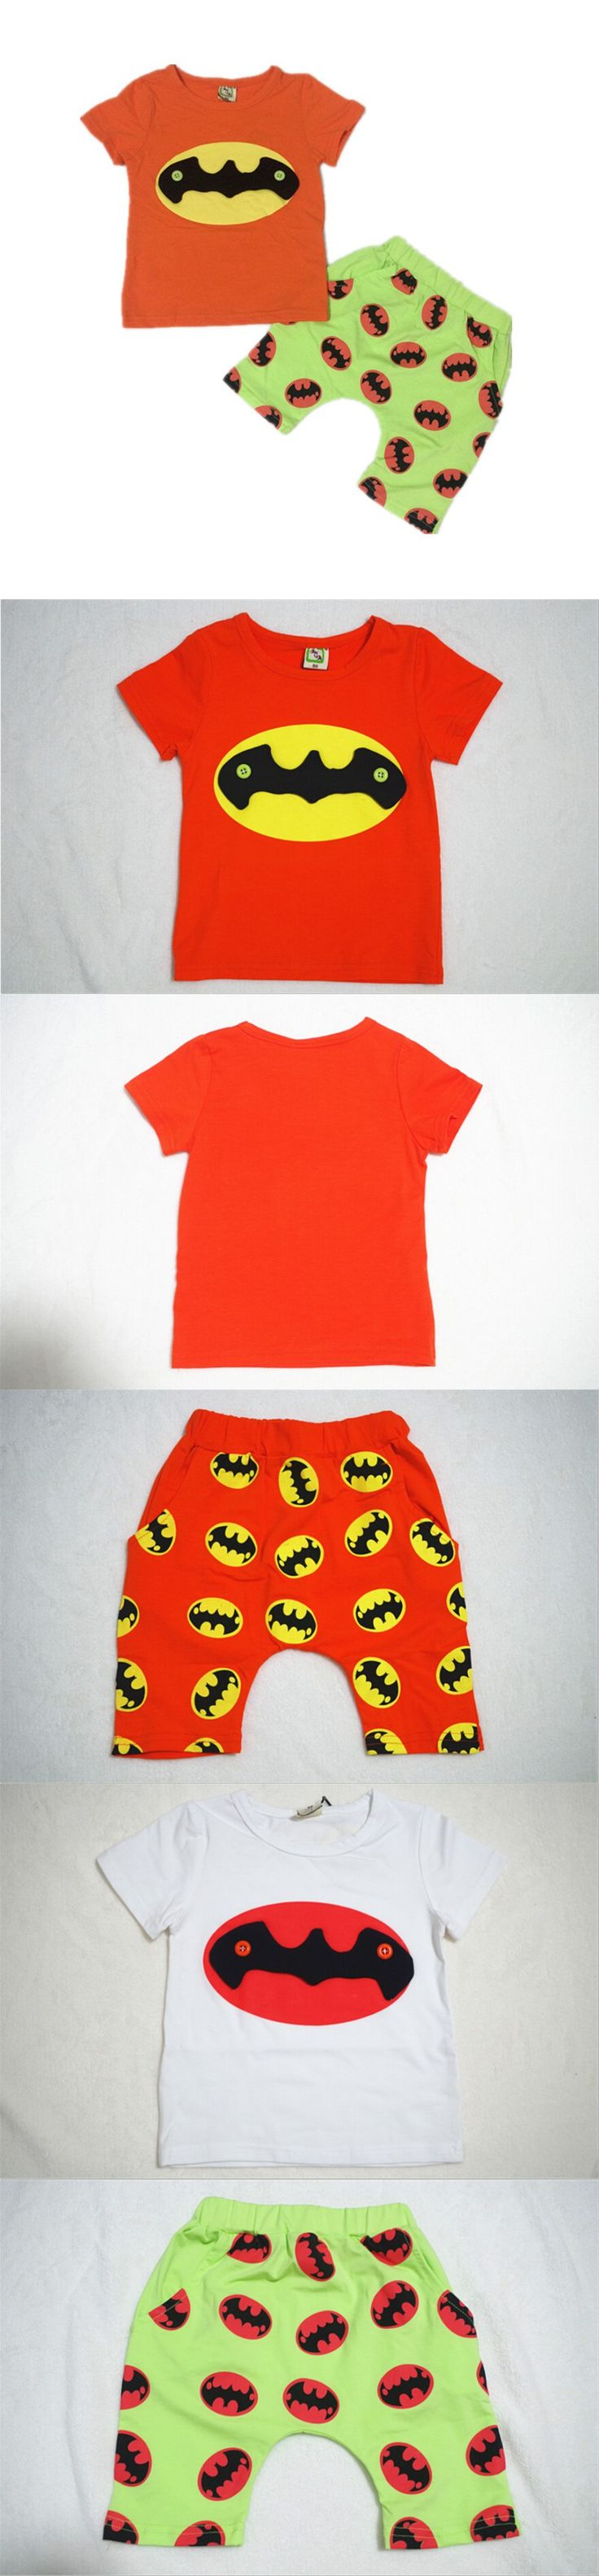 2 Colors 2015 New Batman Suit Cotton Children Clothing Set Baby Wear Summer Kids Clothes Boys Sets T-shirt + Short pants